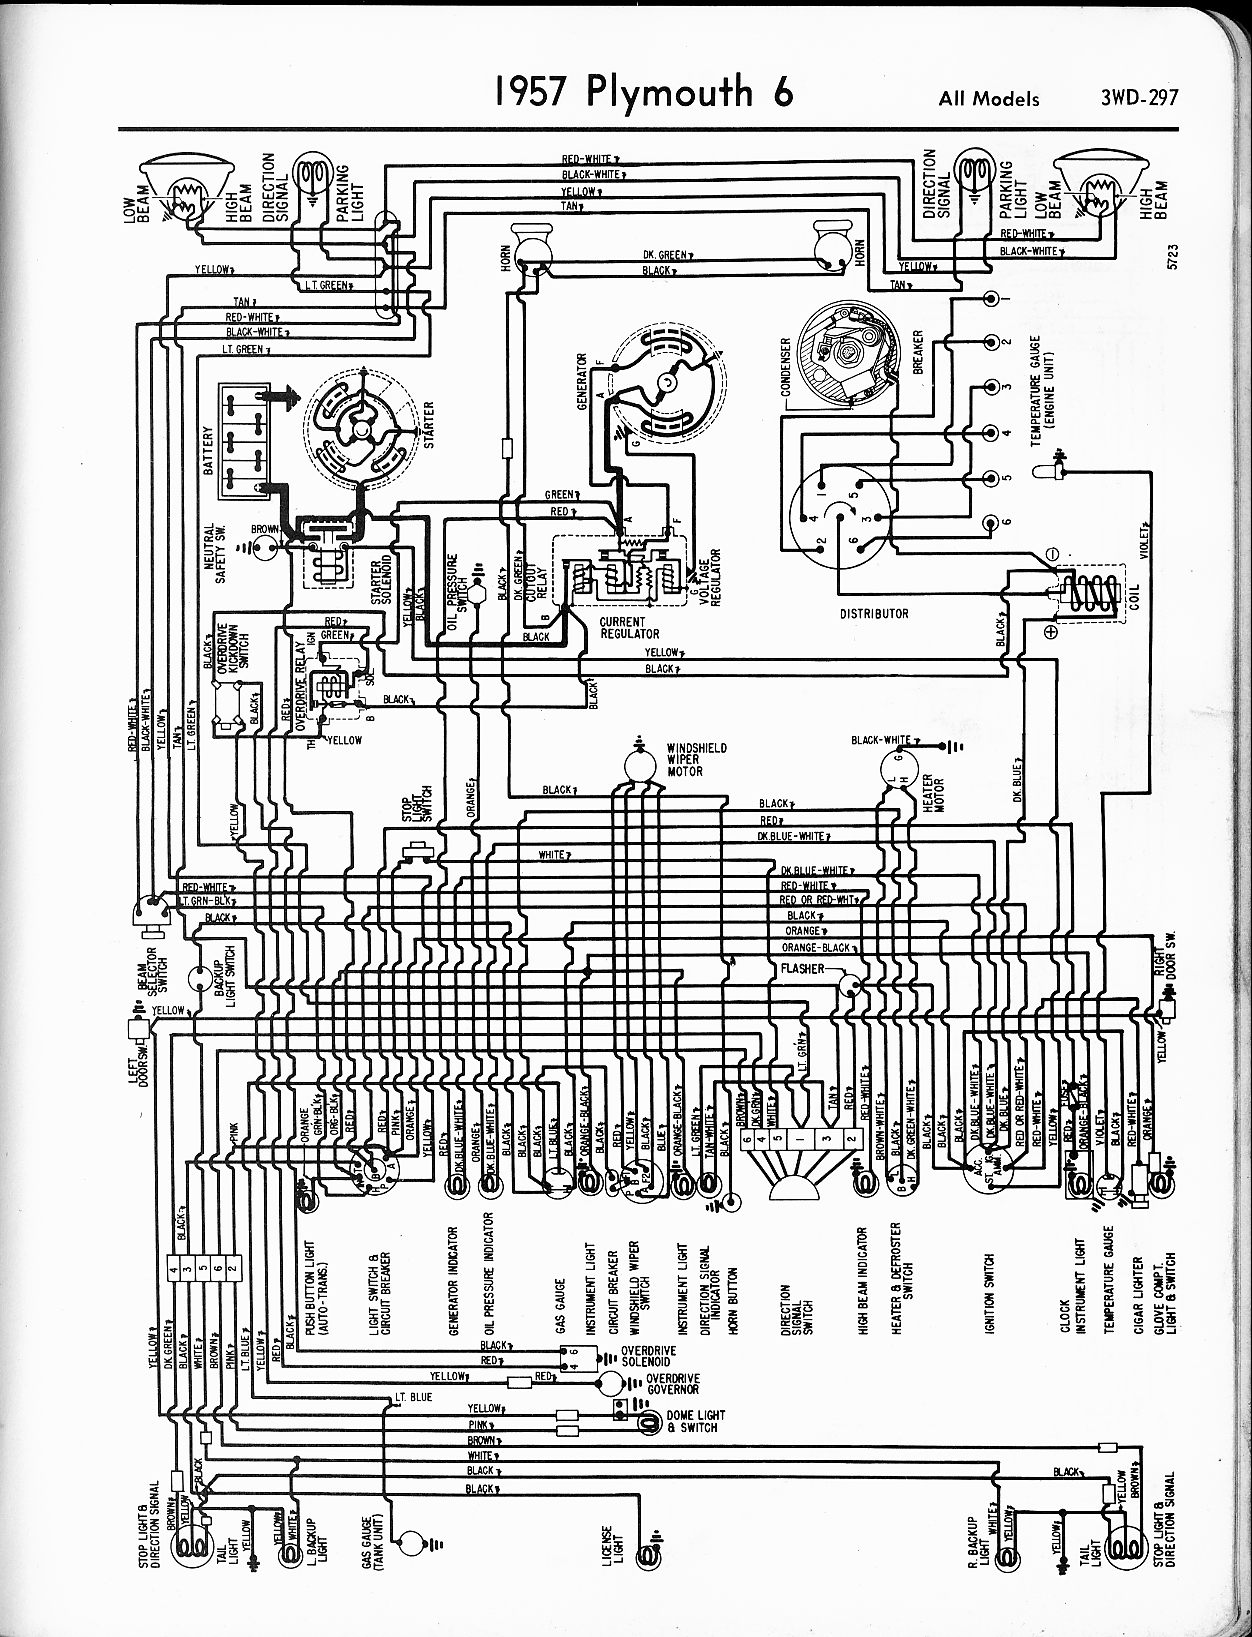 1971 plymouth duster wiring diagram 74 plymouth duster wiring diagram